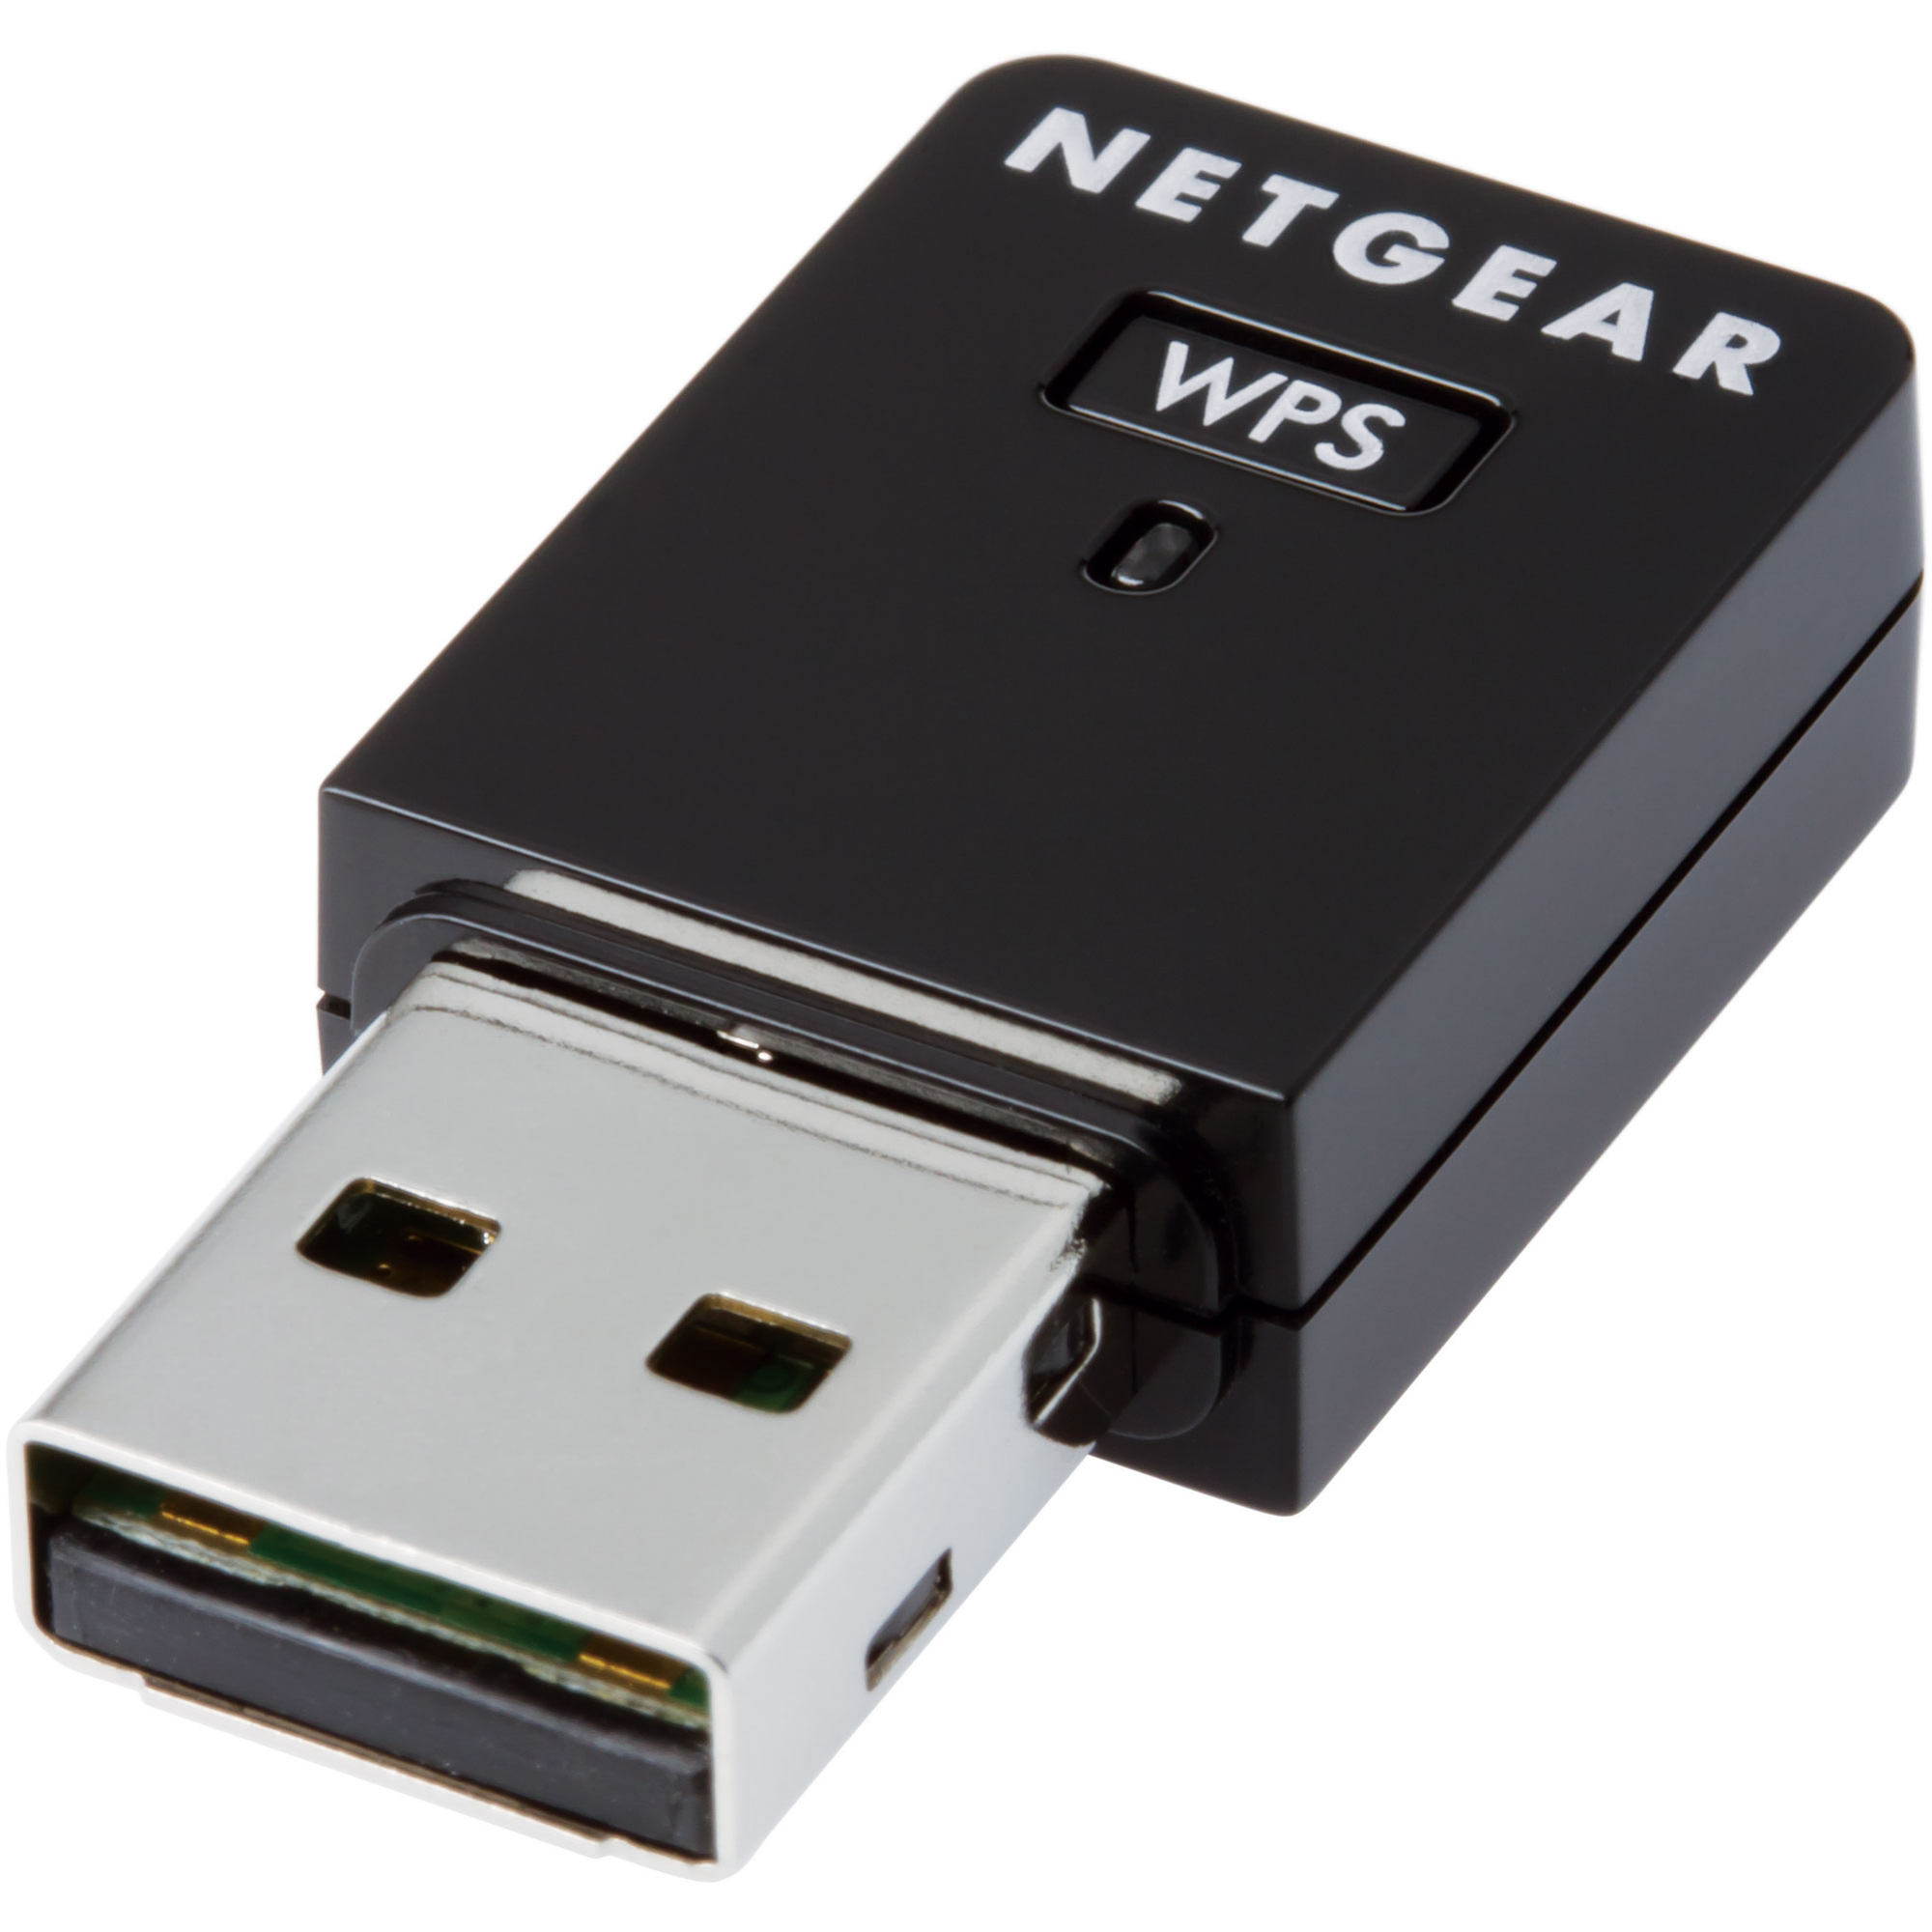 Netgear N300 Wireless Mini USB Adapter